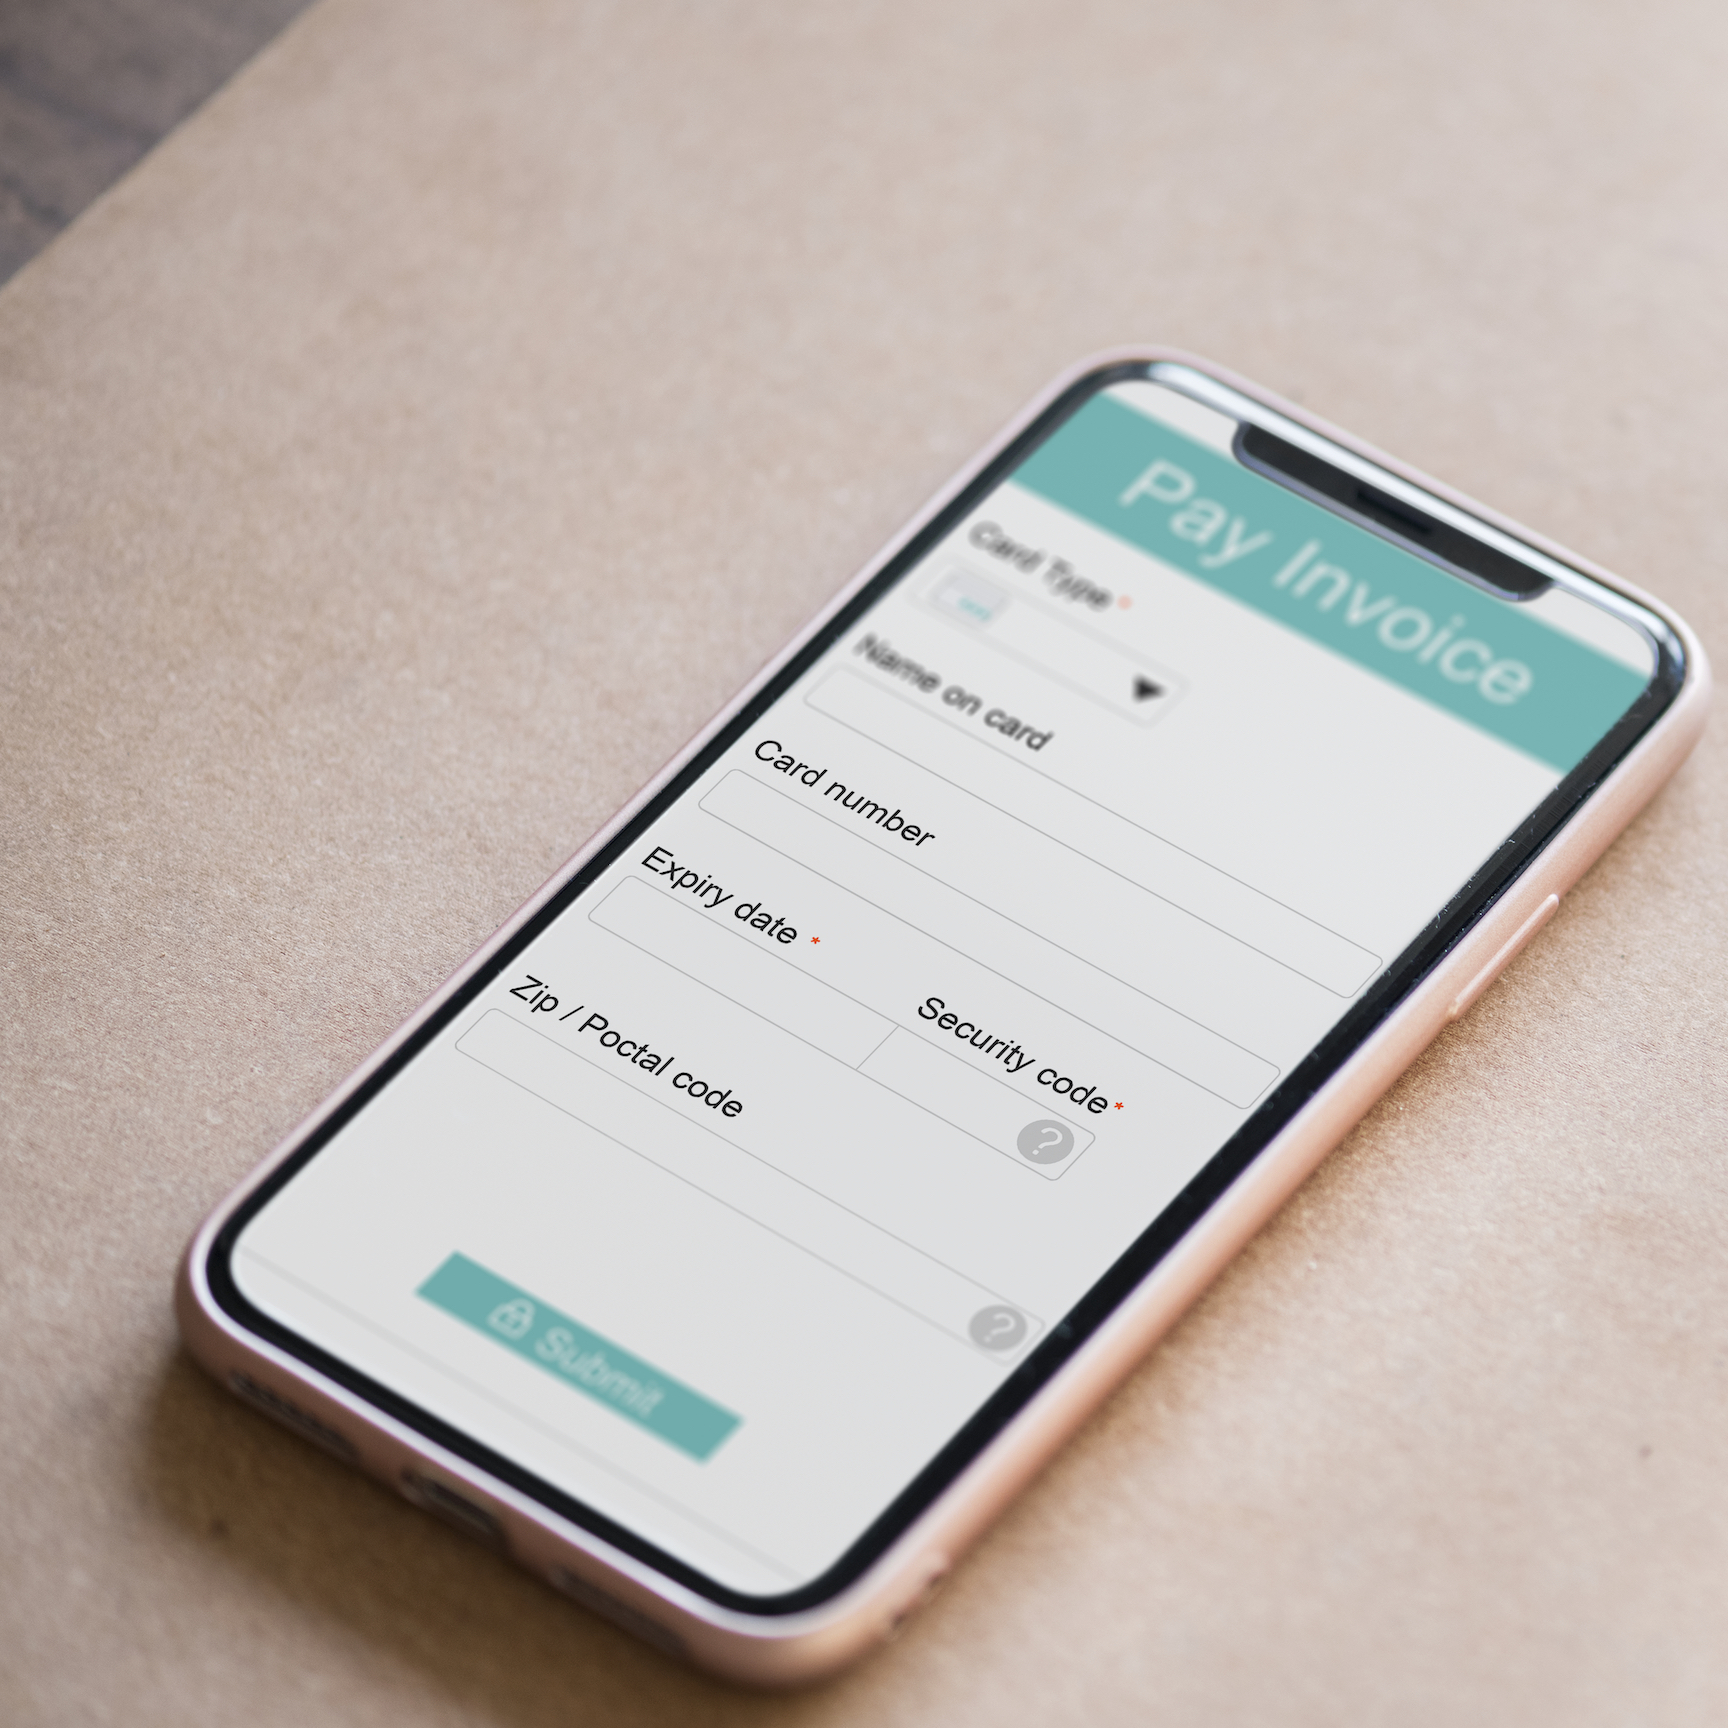 4. Automate Your Payments - One of the easiest ways to stay on top of your finances is to set automatic payments for your bills. This way, you won't have to keep track of what's due when, and you won't run the risk of forgetting a due date and missing your payment. And as a bonus, the more you pay your bills on time, the more that credit report you just checked will improve!